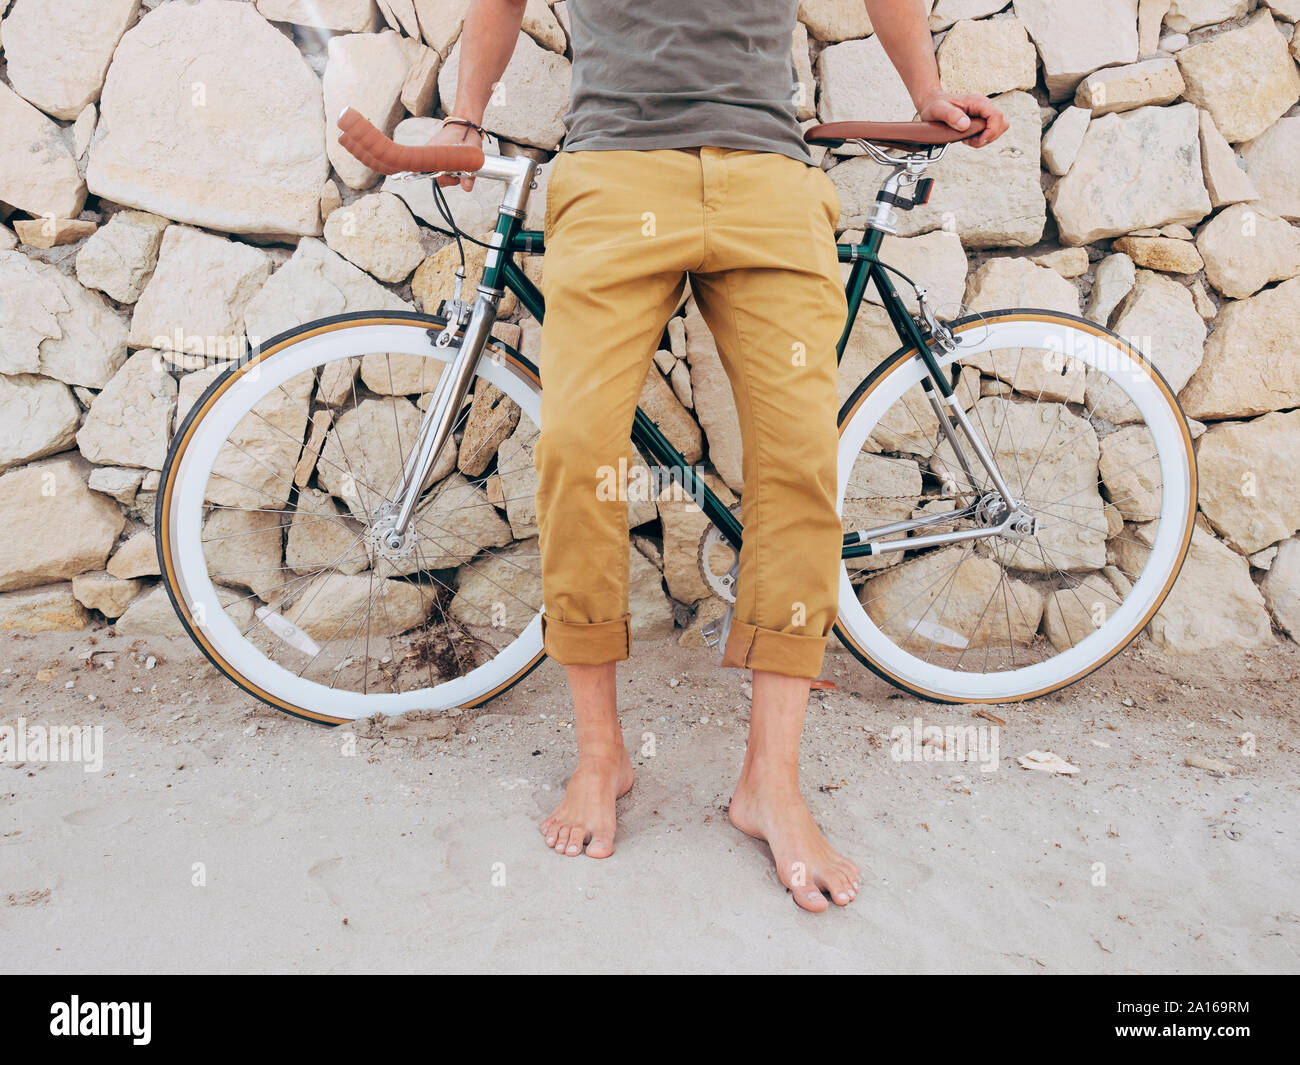 Barefoot man with Fixie bike in front of natural stone wall on the beach, partial view Stock Photo